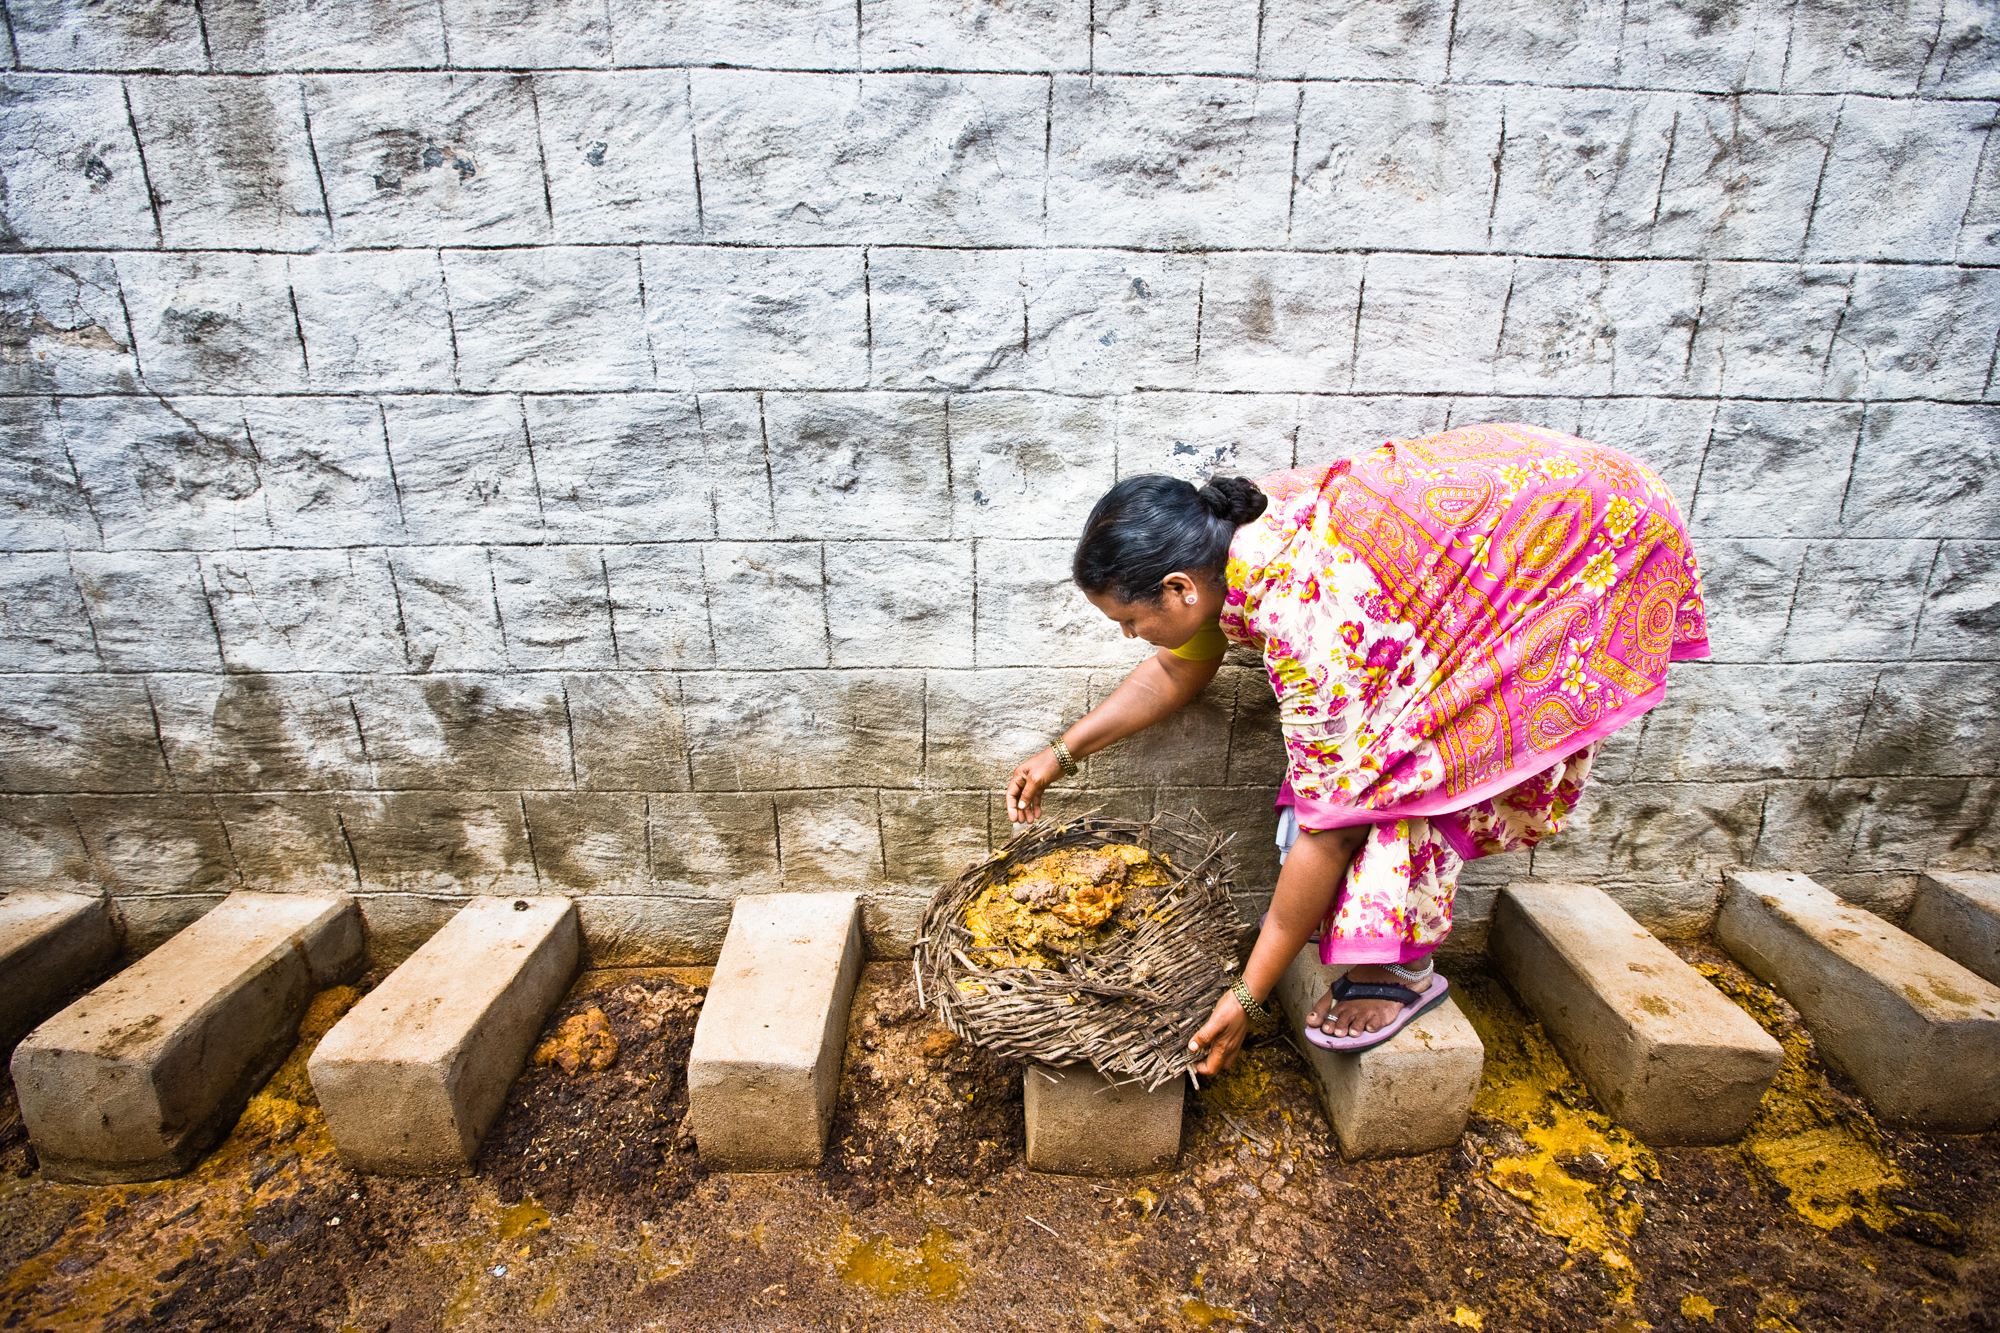 Every day, Uma walks through the village with her basket to the communal latrine. Nobody touches her along the way. She has an enamel toilet in her own home, but she cleans the excrement of others because this is the job assigned by her caste. This practice has been illegal since 1993, but still 700,000 Dalits, perhaps more, endure the same daily routine as Uma.  Kurnool District, Andhra Pradesh. Photo: Ecce Opus for CSW